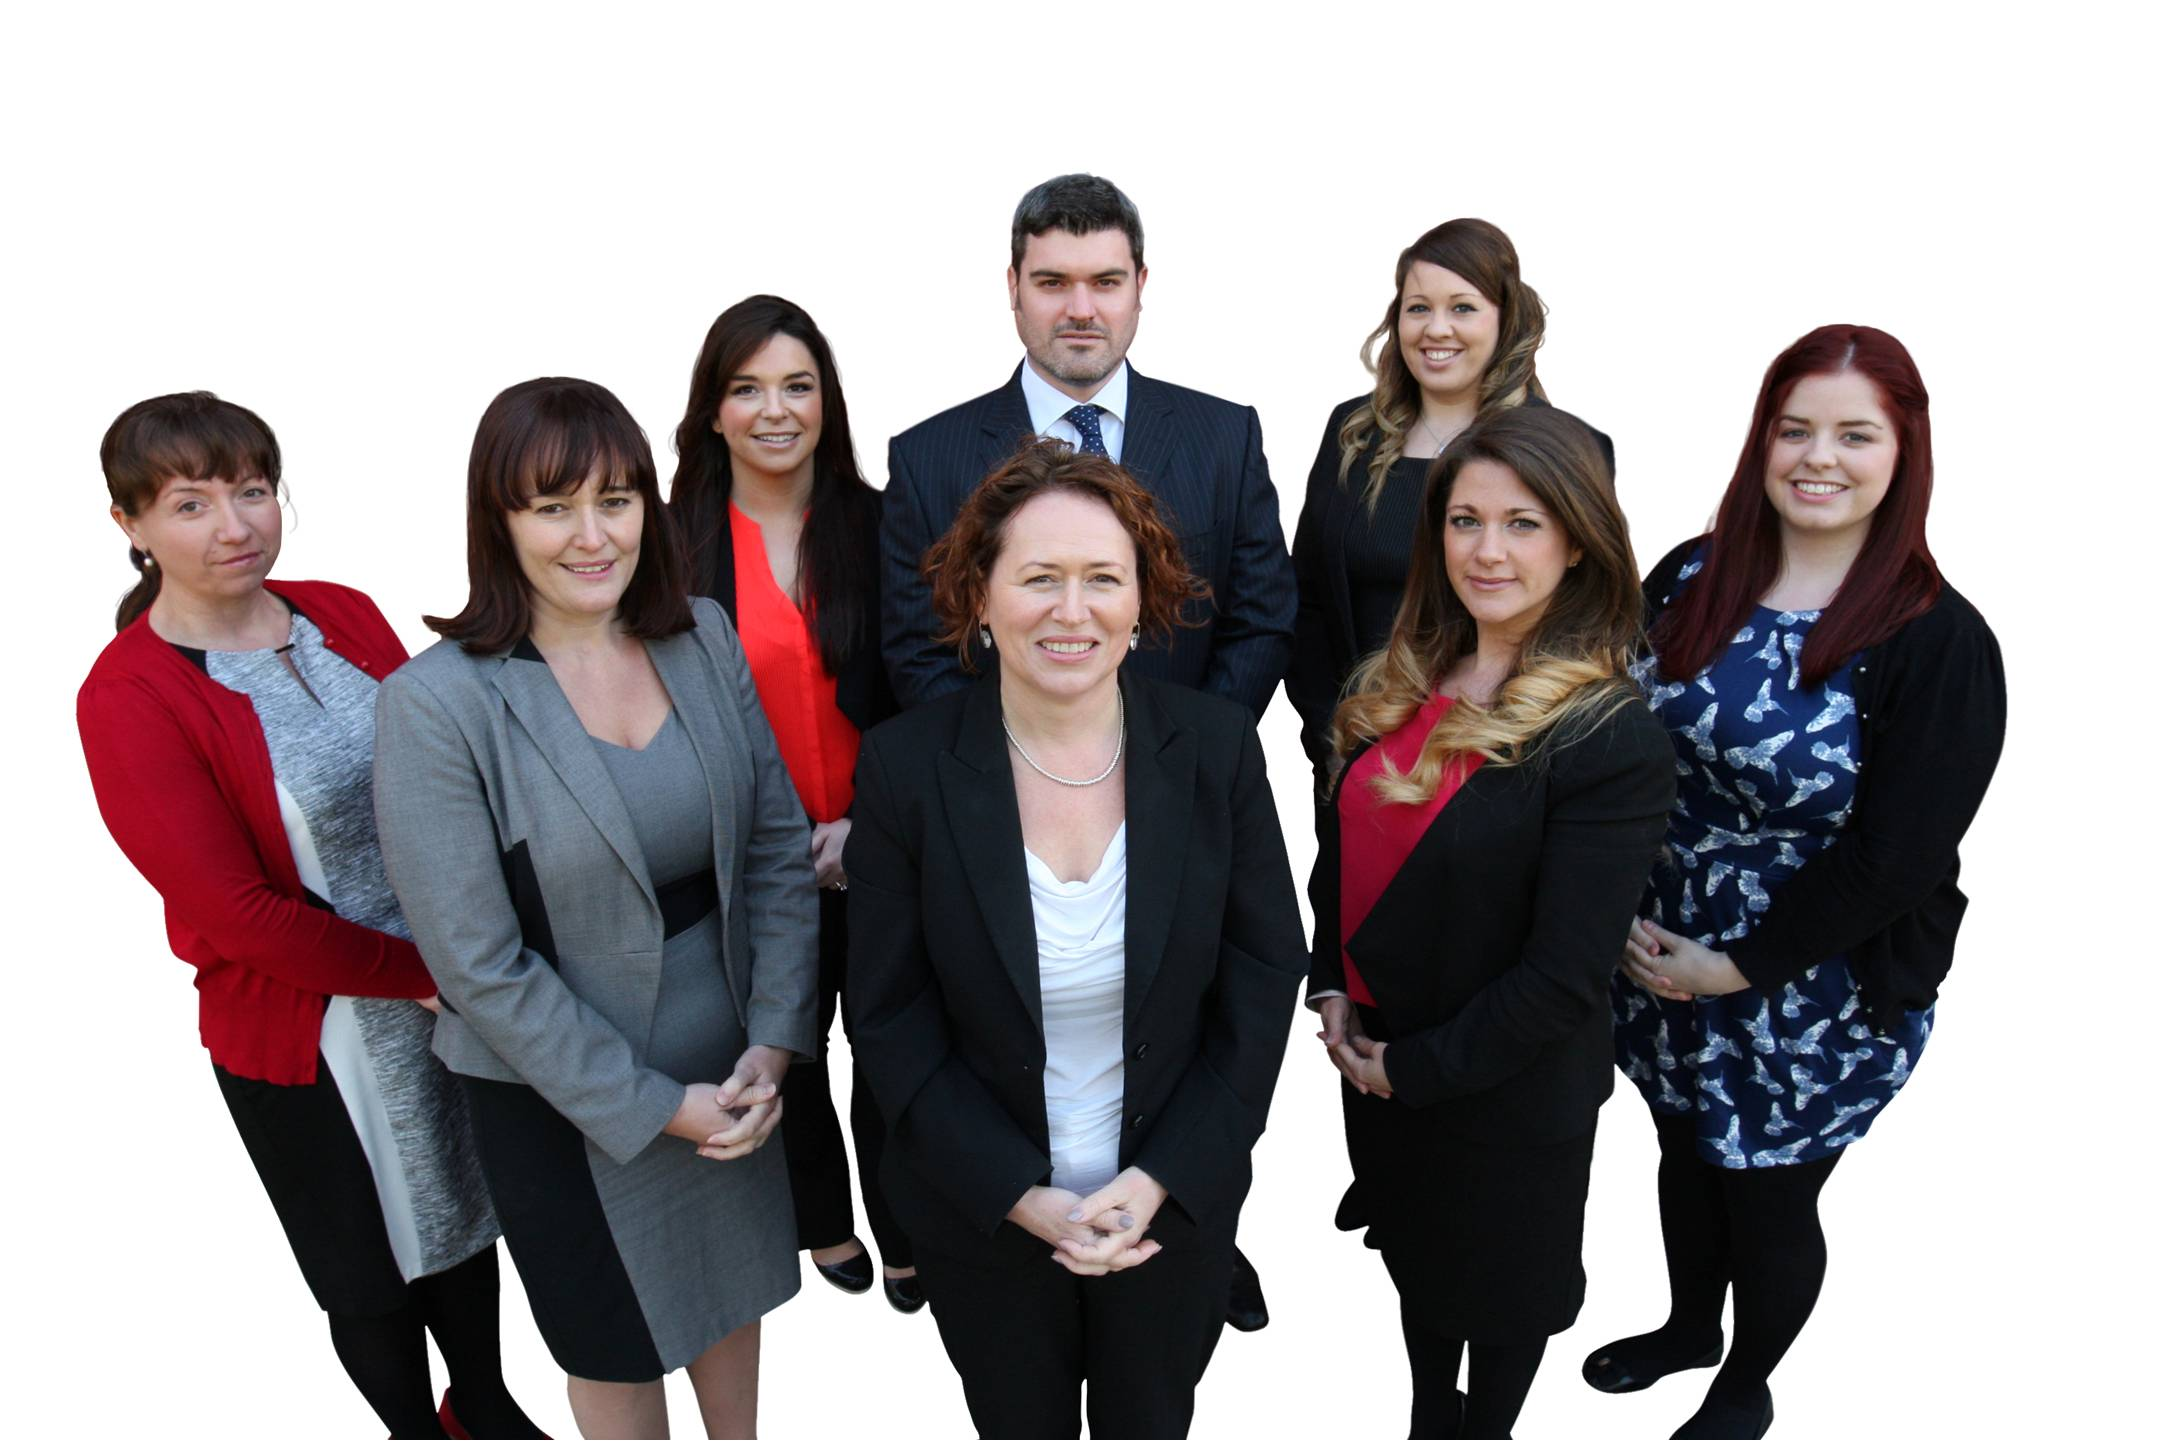 Our Fatal Injuries expert team. We deal with medical negligence claims arising from Fatal Injuries.